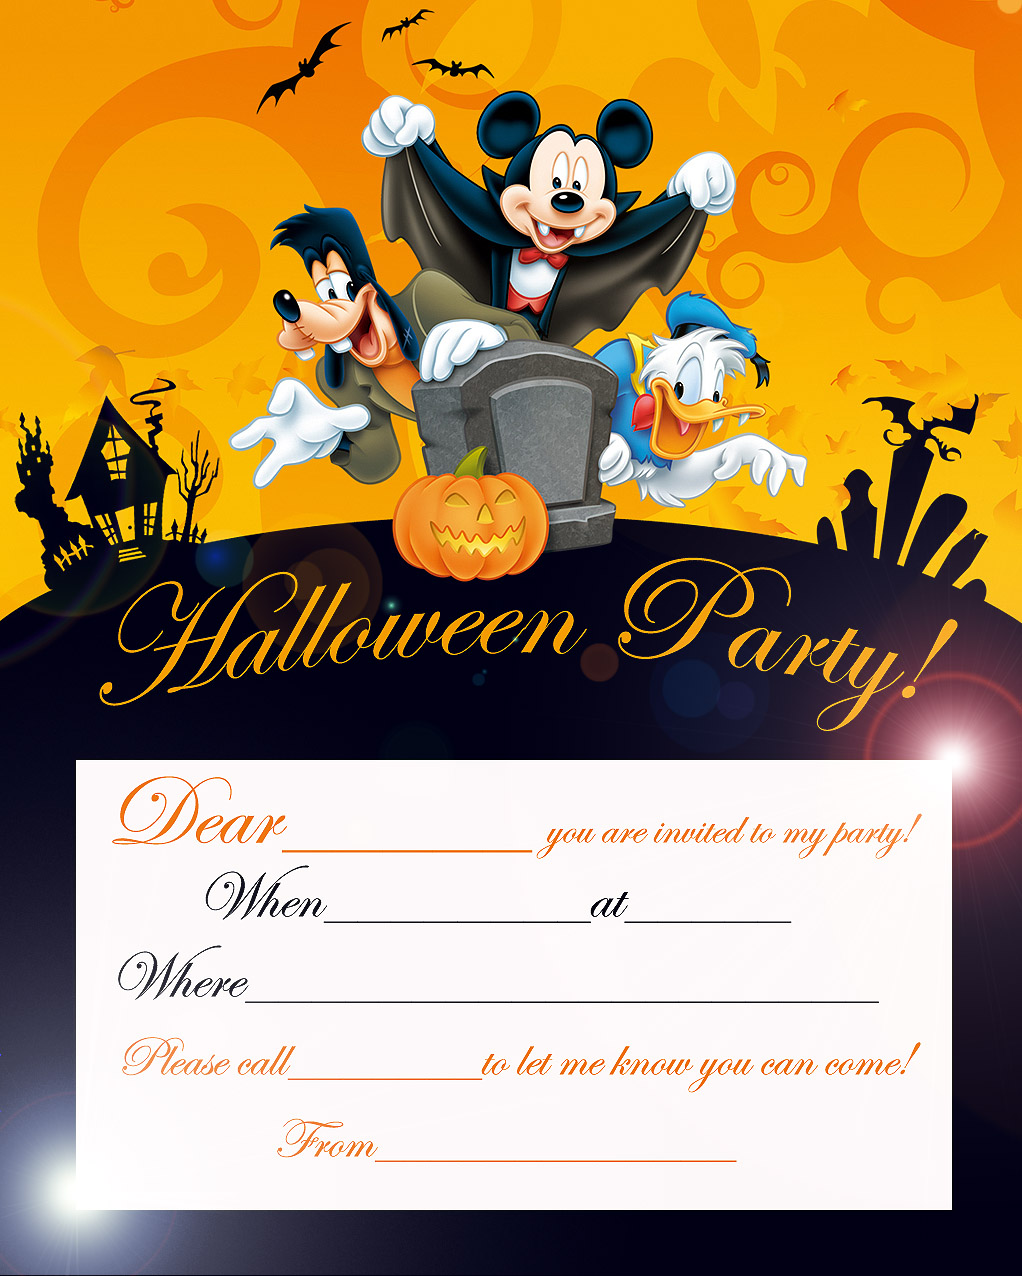 Disney Halloween Party Invitation Card Printable Best Gift Ideas Blog